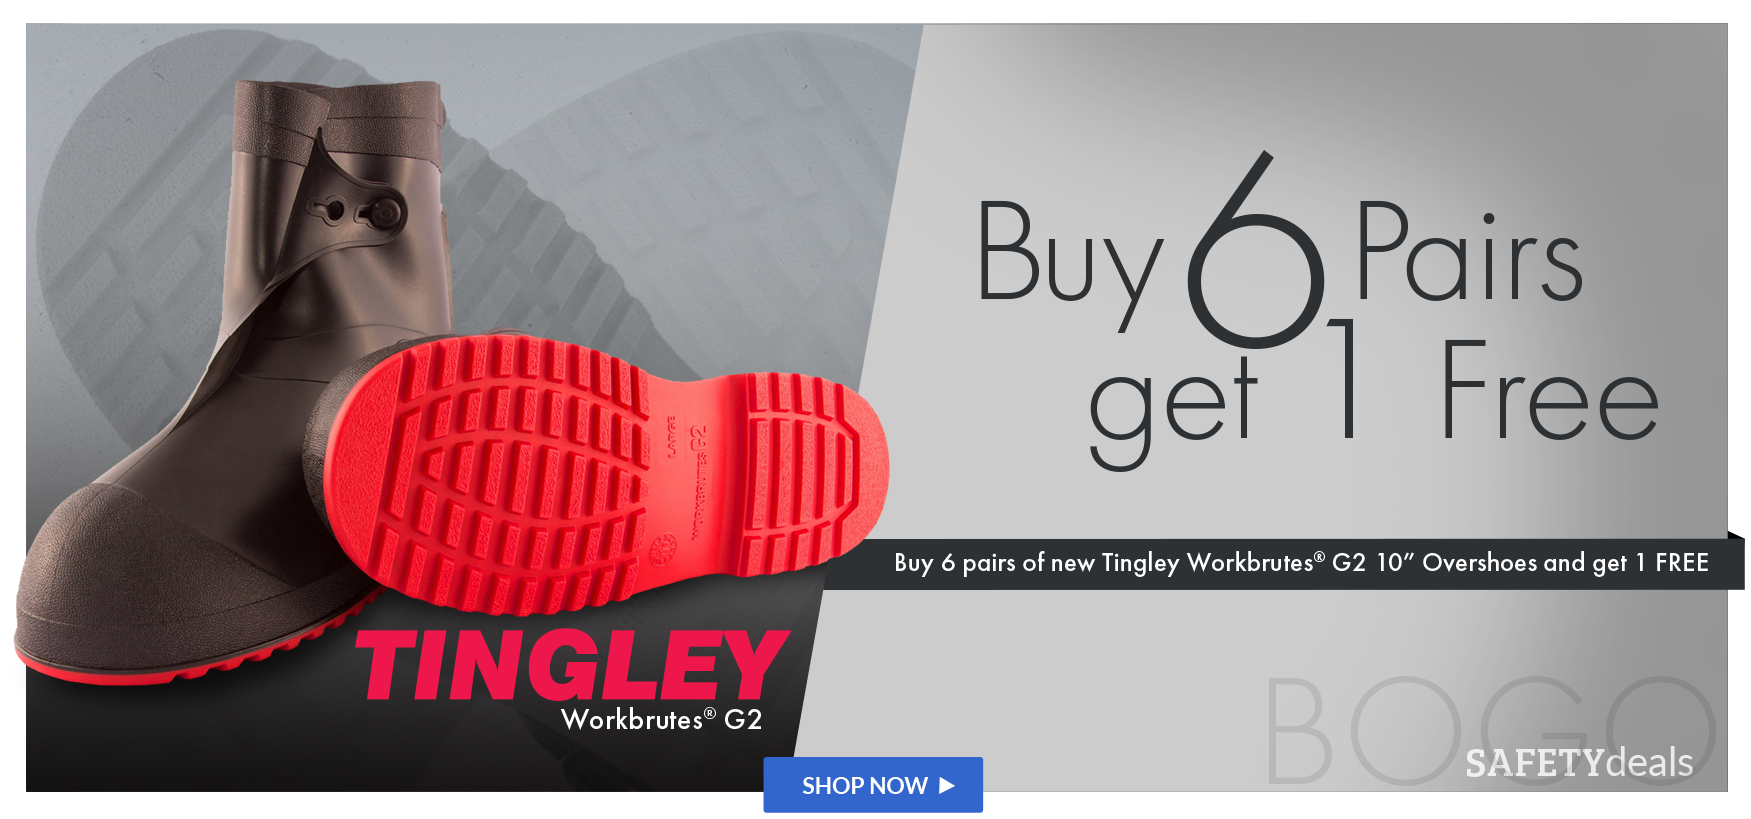 Buy 6 pairs of Tingley Workbrutes overshoes and get 1 Free